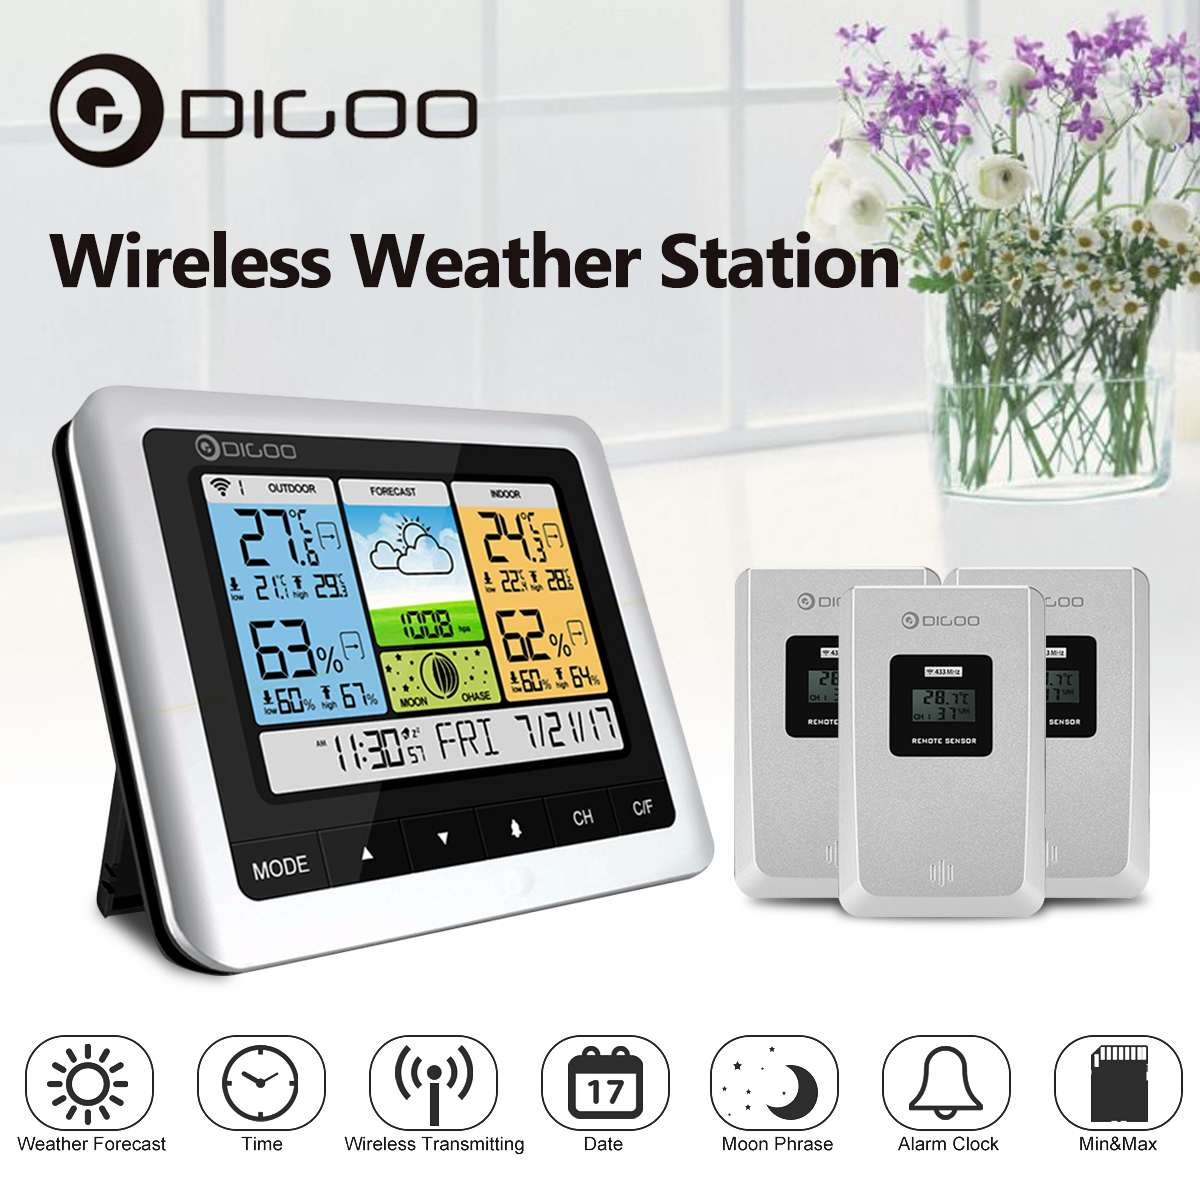 Digoo DG TH8888 White Color Wireless Weather Station Home Digital Thermometer Humidity Meter USB Outdoor Forecast Sensor Clock